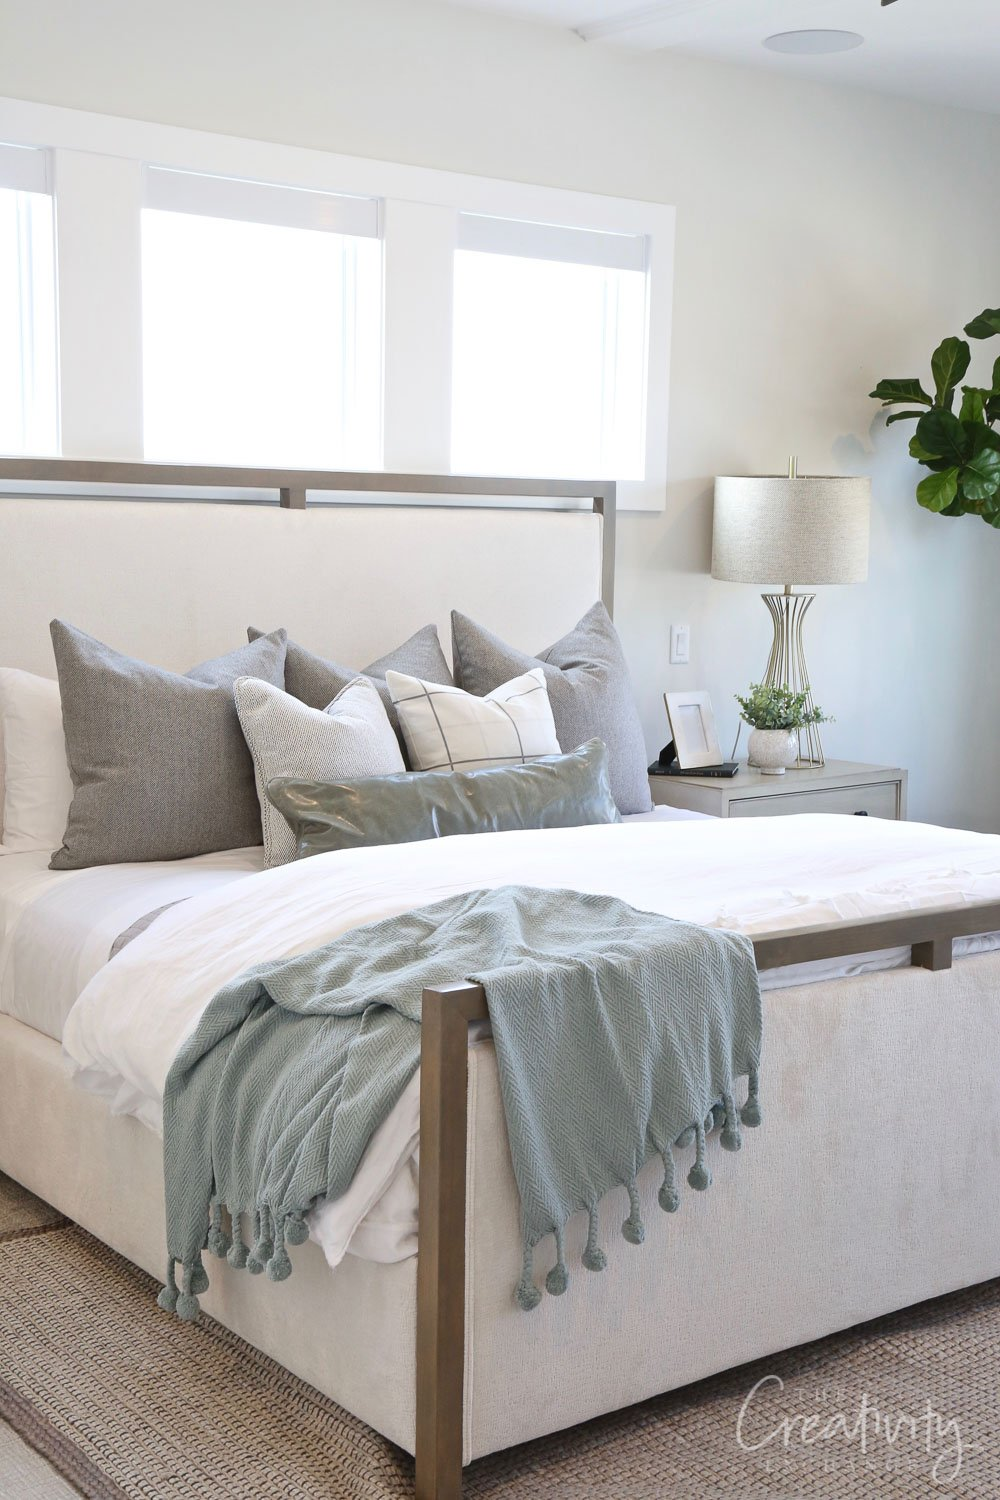 Bedroom wall color is Sherwin Williams Drift of Mist